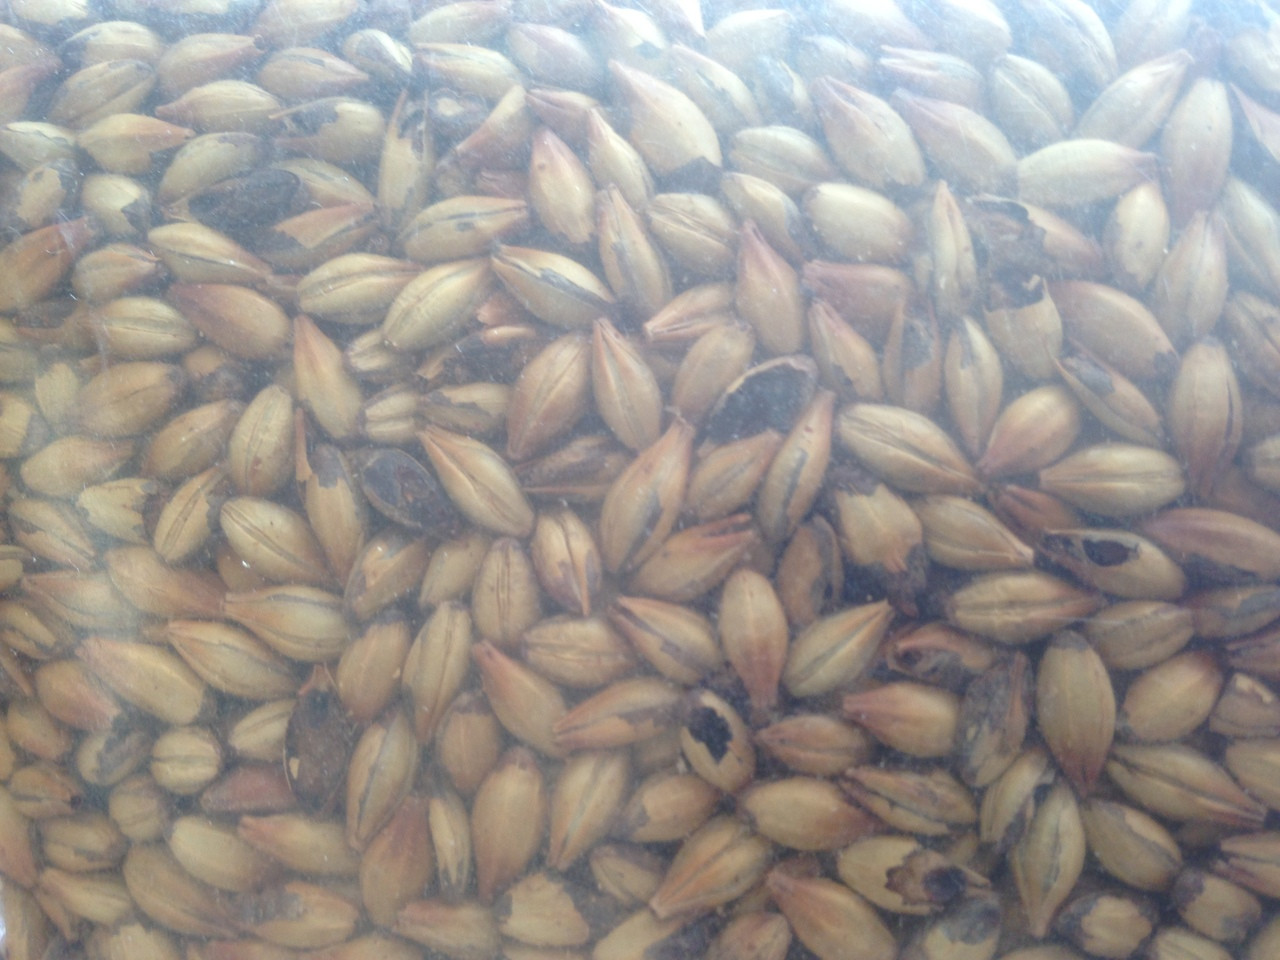 Briess Pale Ale Malt 2-row 1 Lb